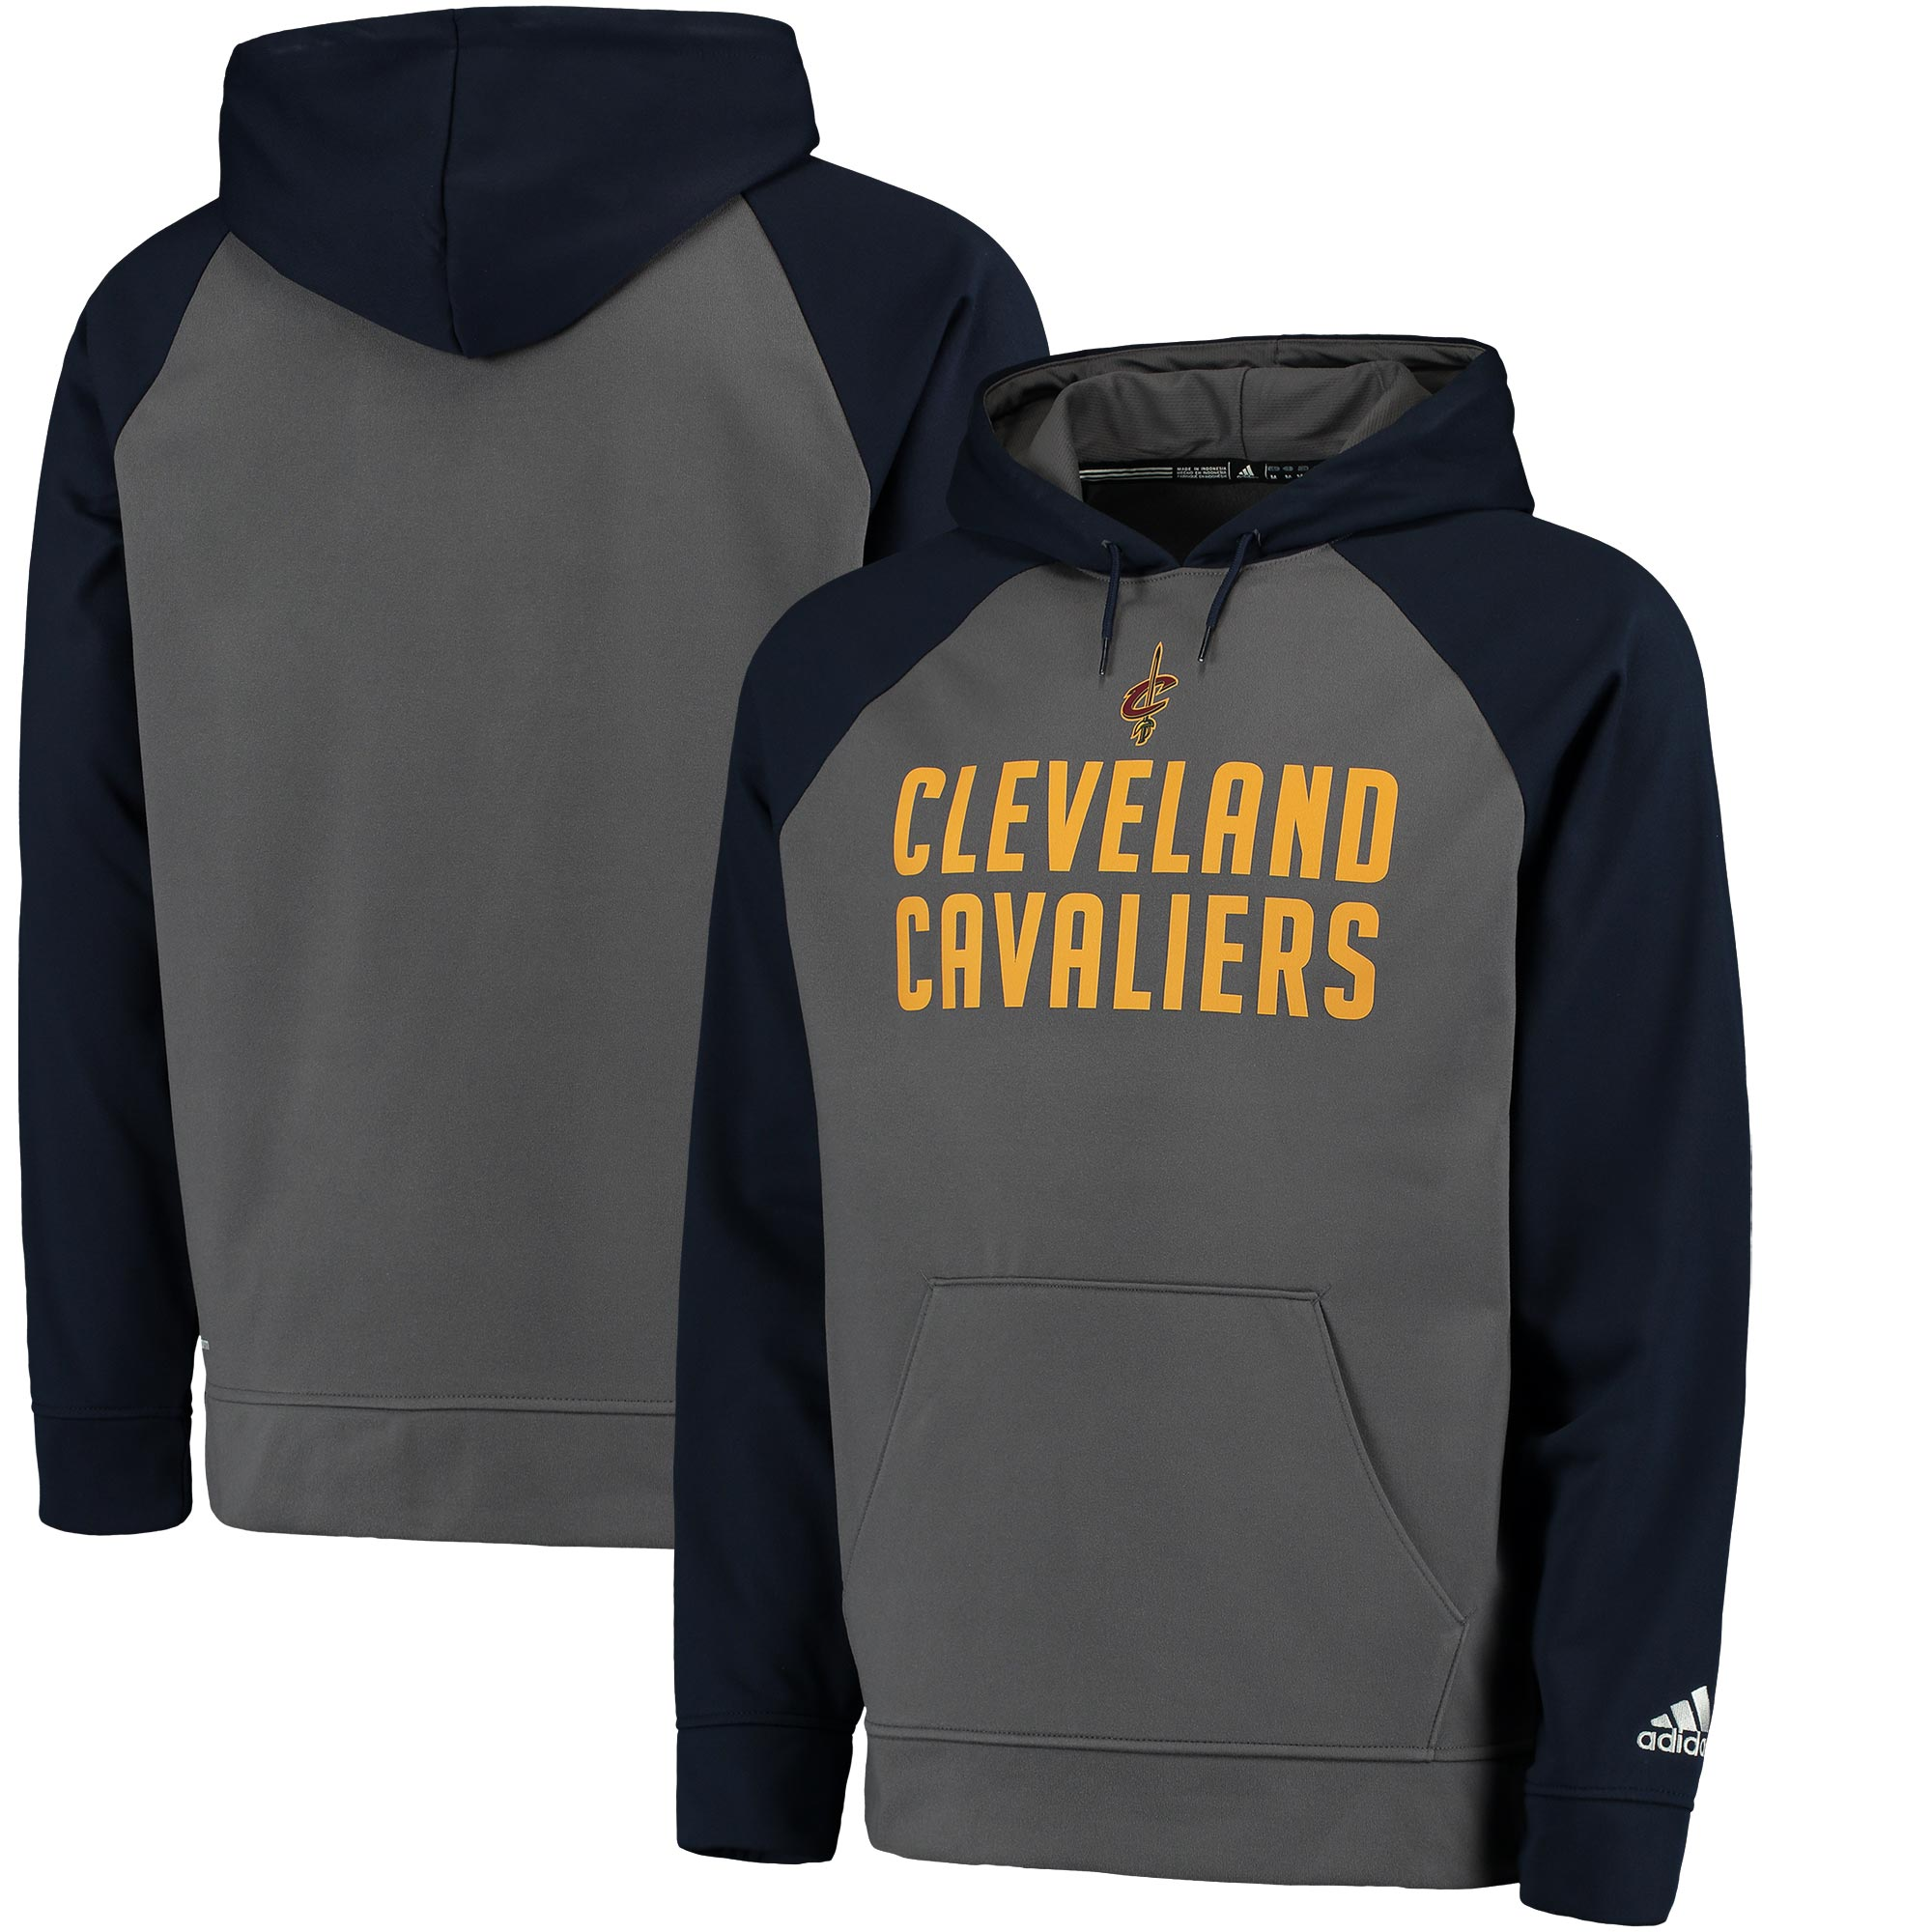 Cleveland Cavaliers adidas 2016 Tip-Off Pullover Hoodie - Gray/Navy